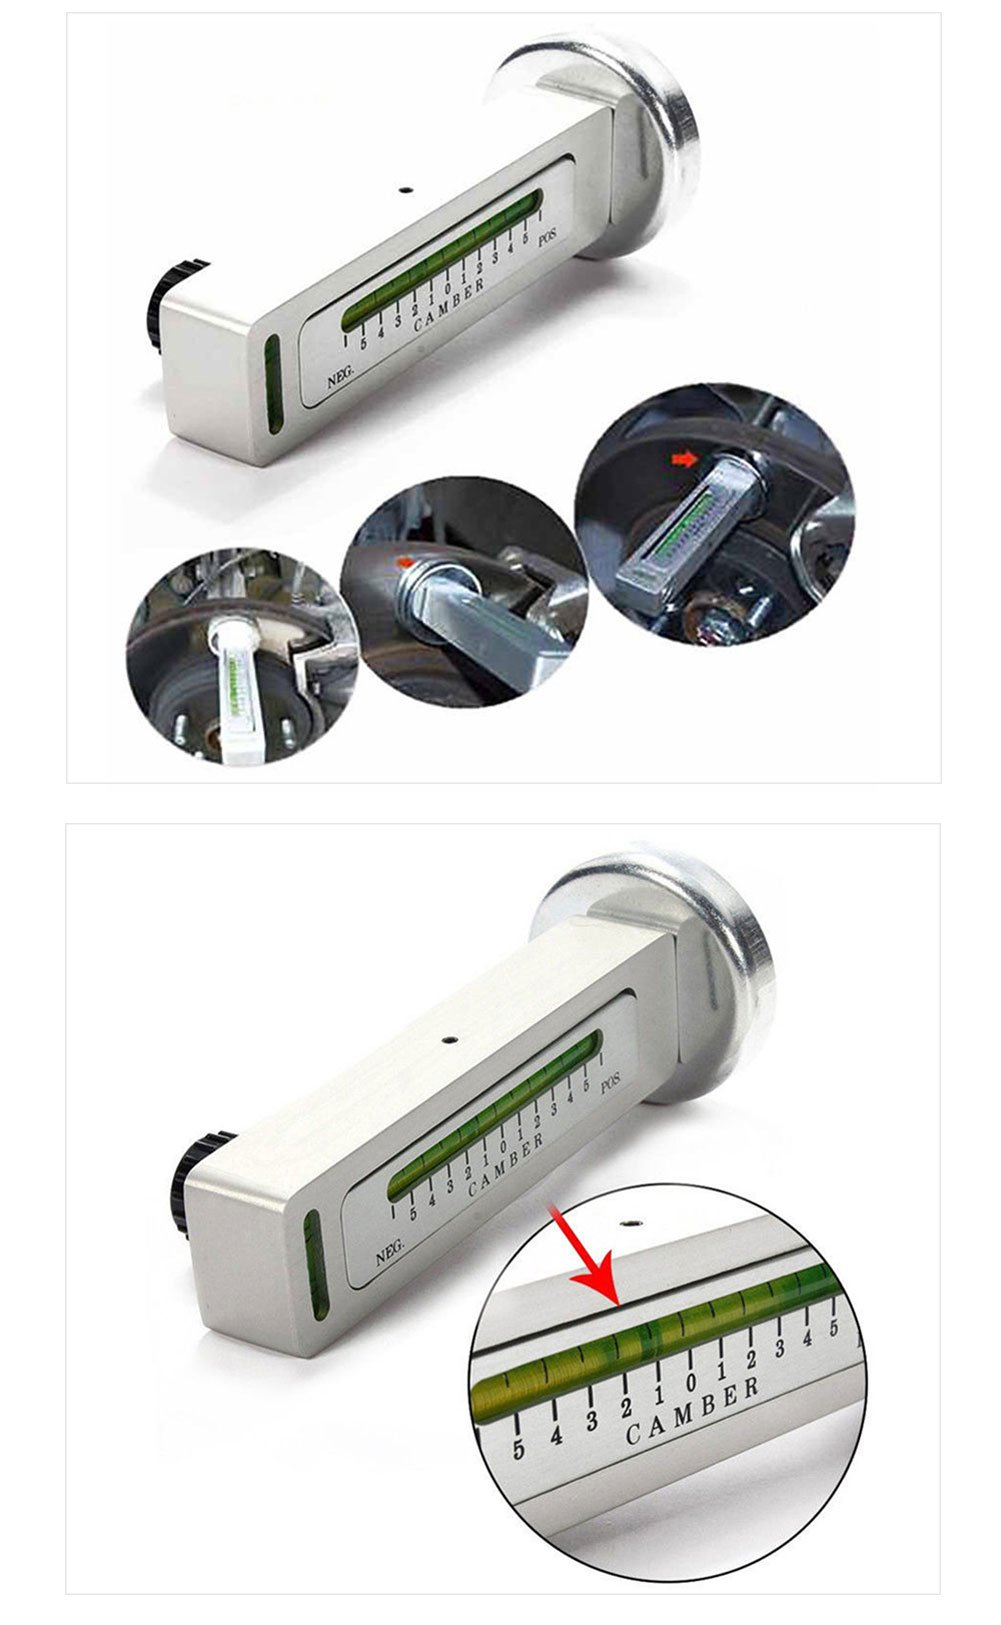 Automarketbiz Strong Magnetic Four Wheel Positioning Level Tire Locator Wheel Alignment Equipment Car Goniometer by Automarketbiz (Image #6)